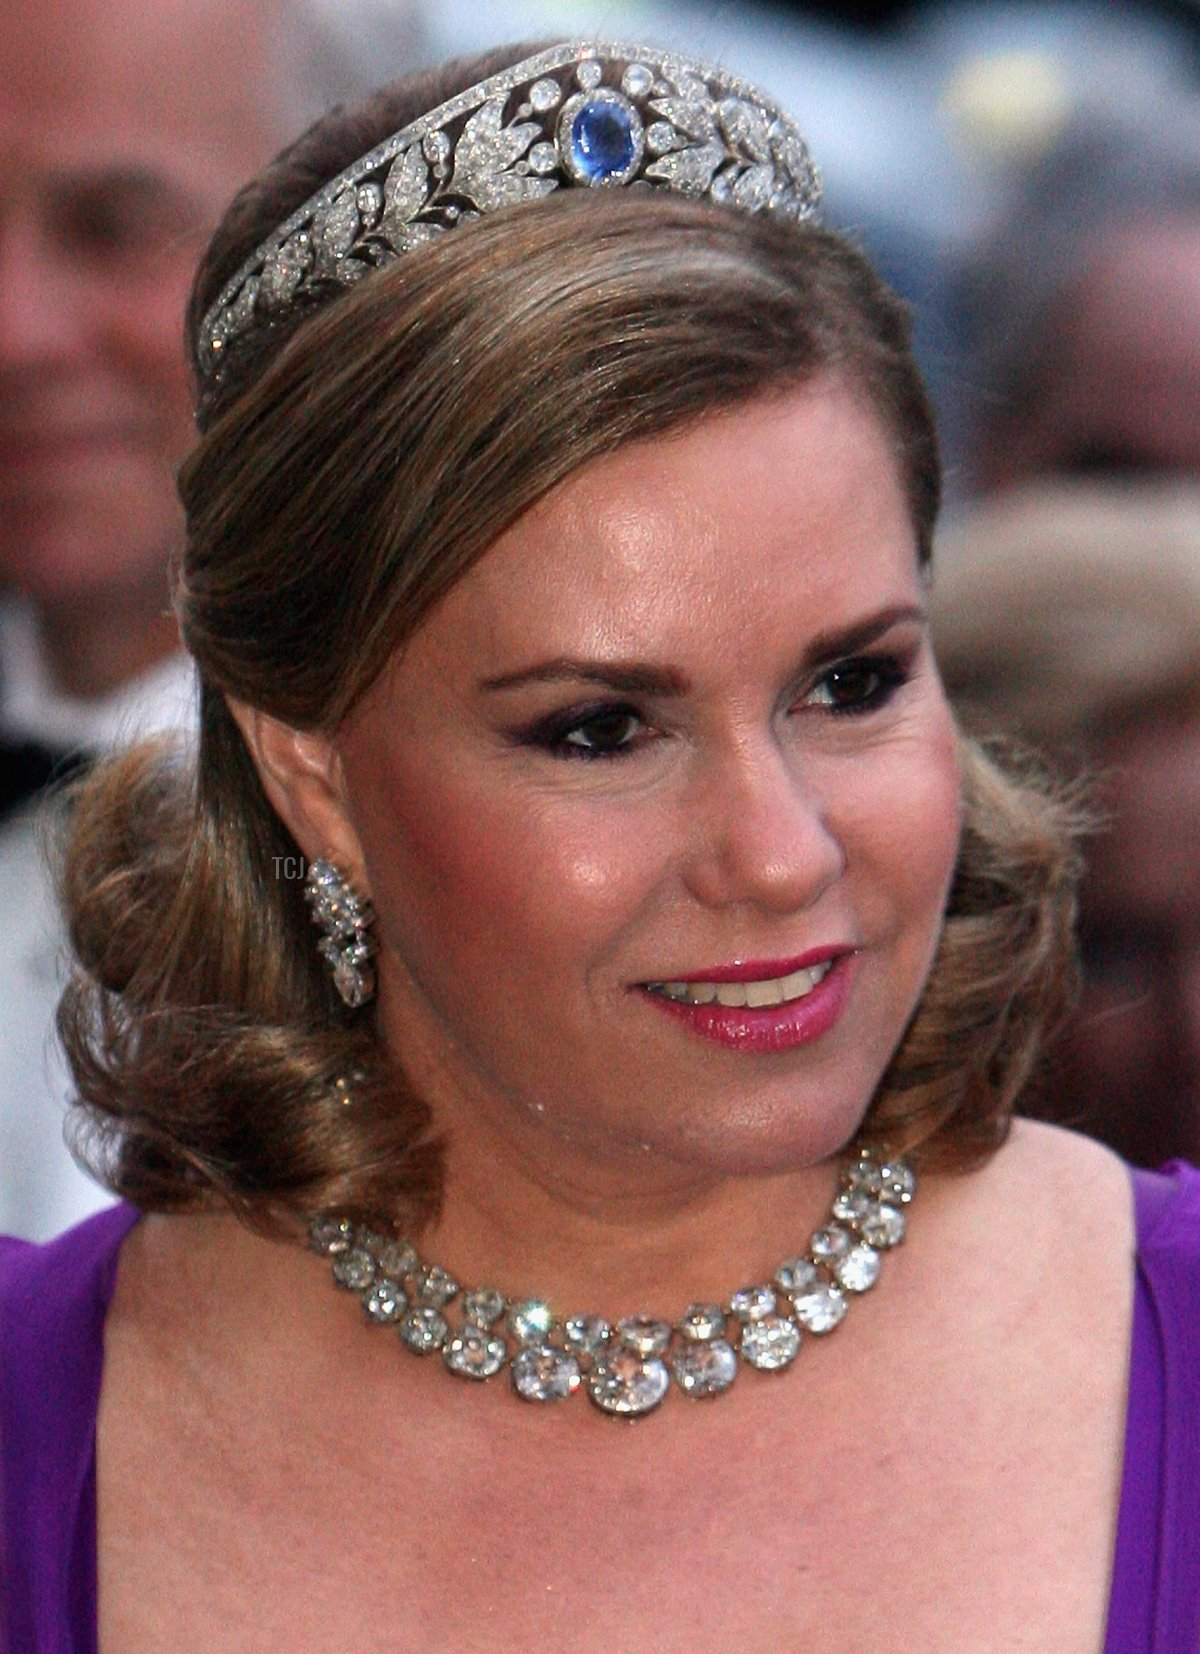 Grand Duchess Maria Teresa of Luxembourg arrives to a concert and reception at the Nordic Museum in Stockholm on the second day of a three day state visit on April 16, 2008 in Stockholm, Sweden